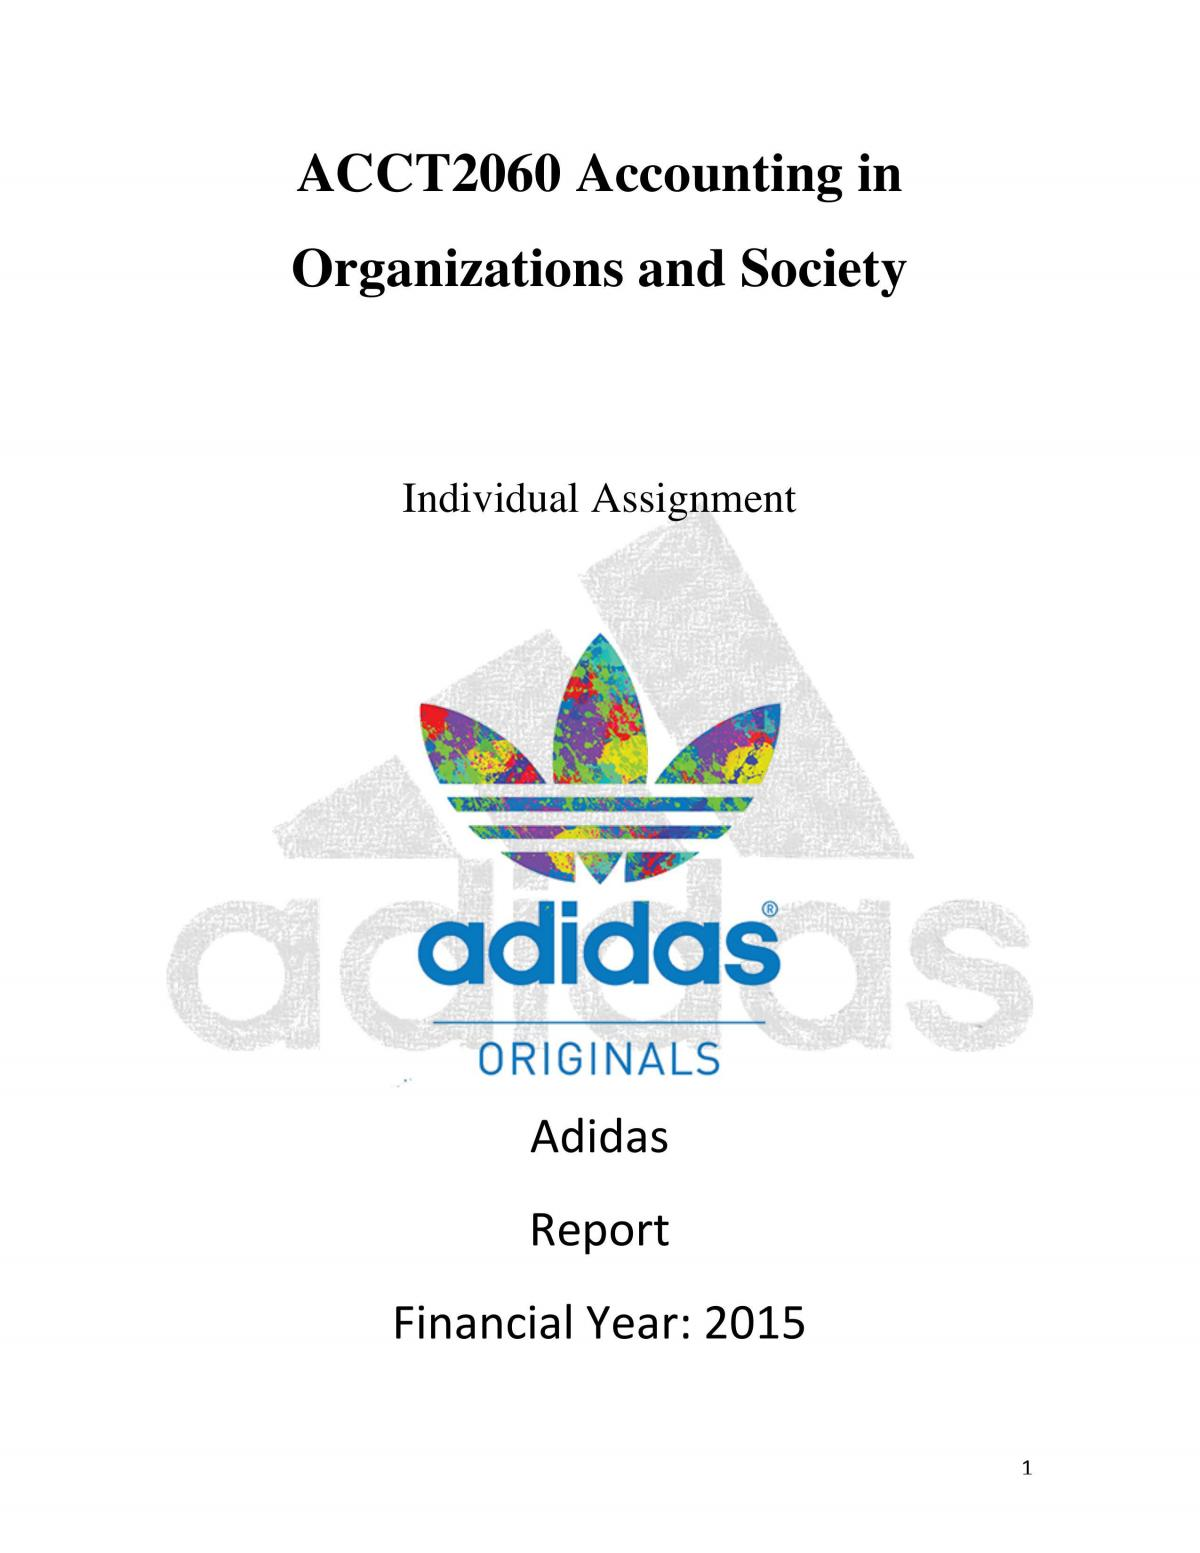 Sustainable/Corporate Social Responsibility Report - Page 1